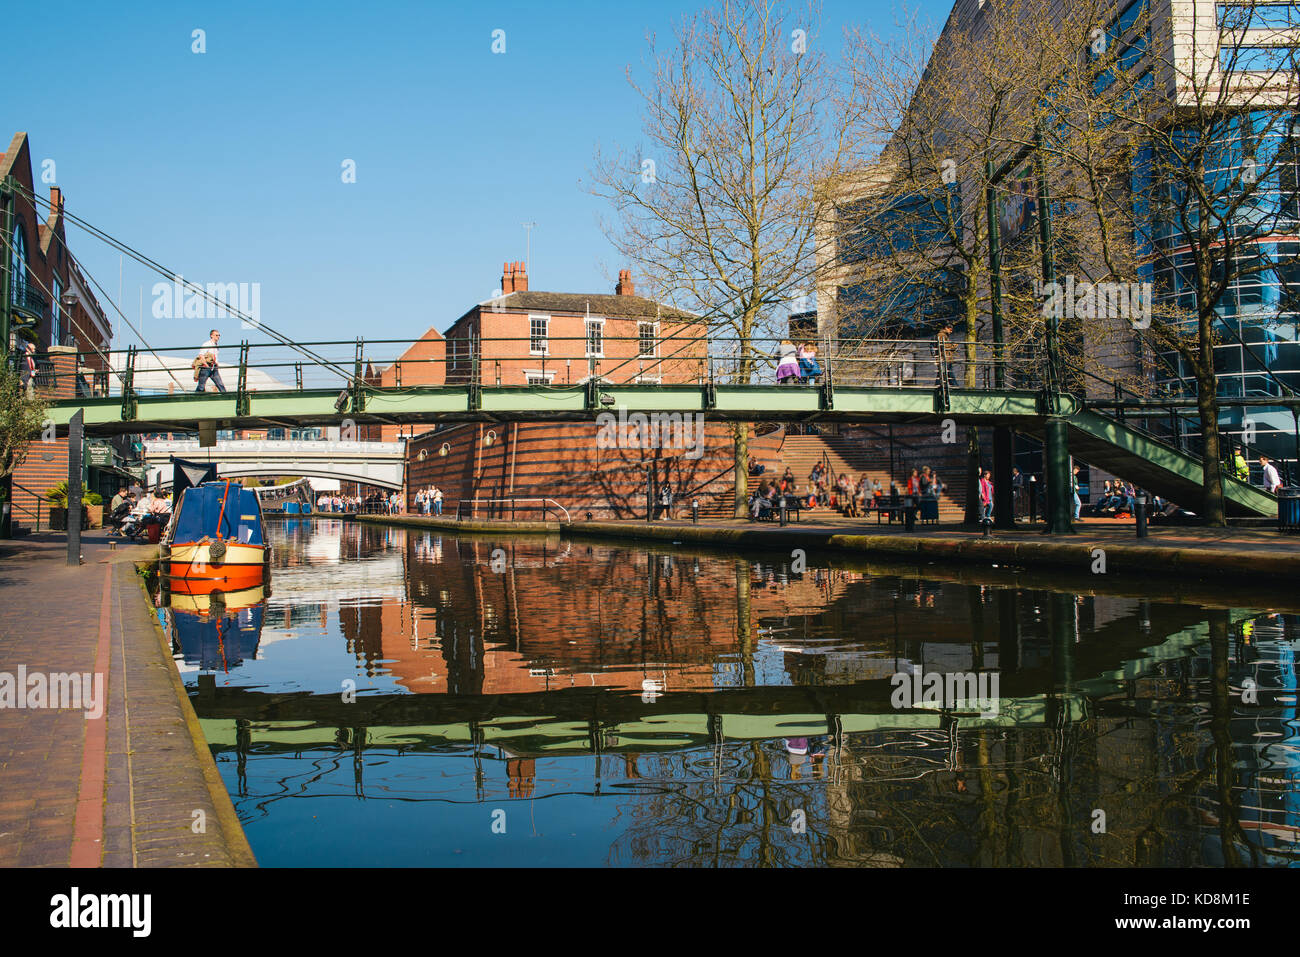 People strolling along Birmingham's main canal on a pleasant morning Stock Photo